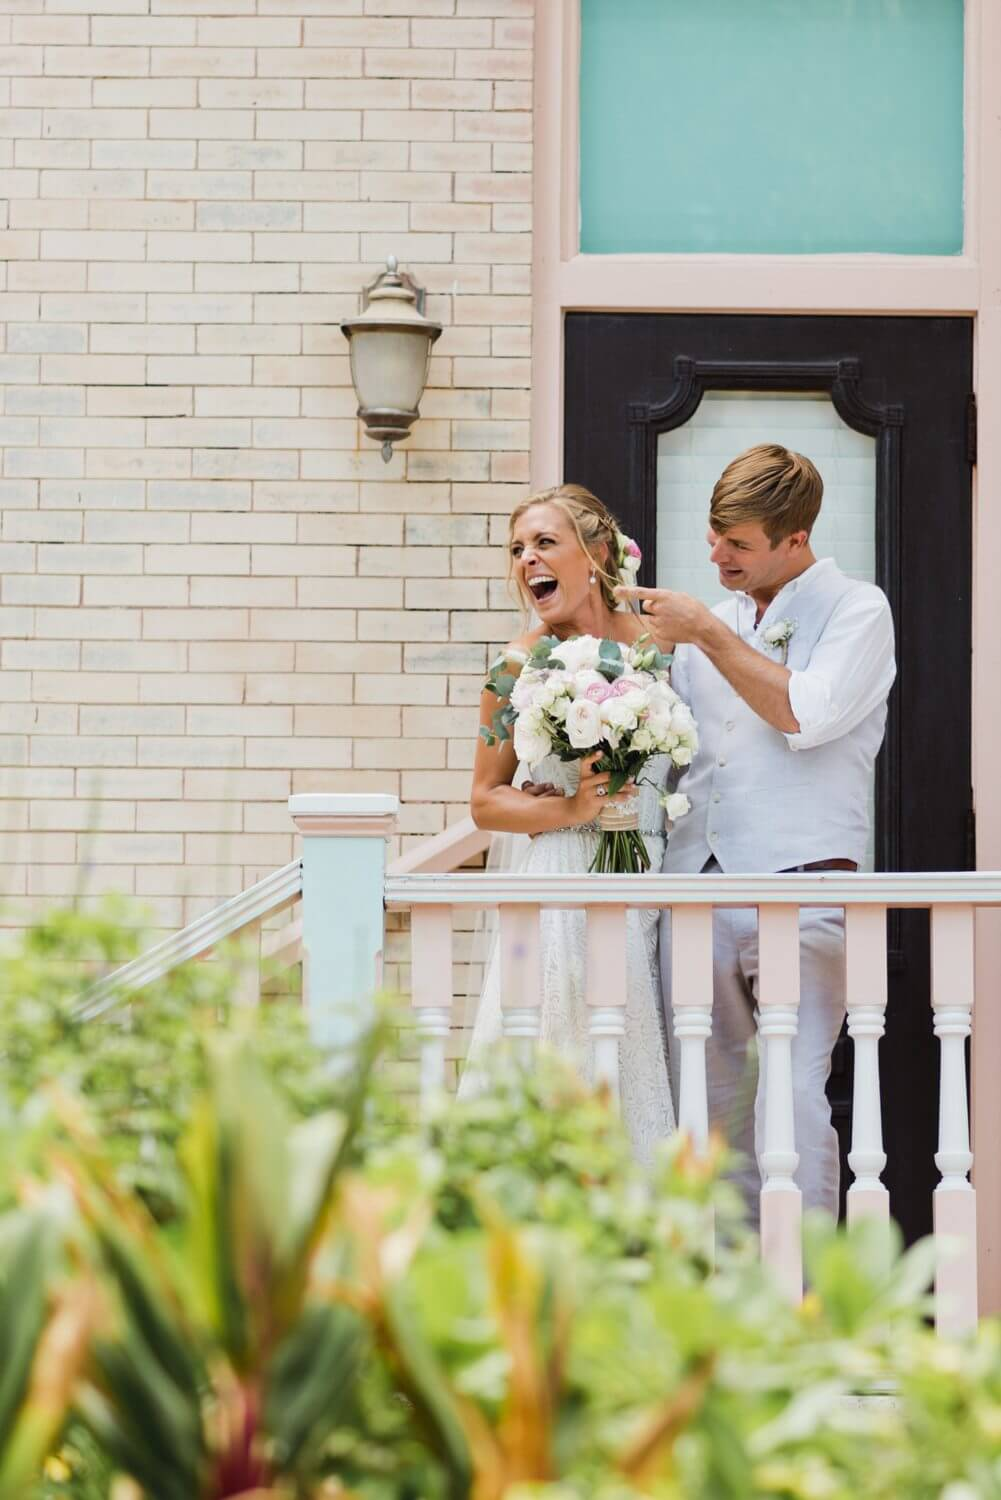 Freas Photography Southernmost House Wedding 56 - Boho Styled Key West Wedding at the Southernmost House in Key West, Florida